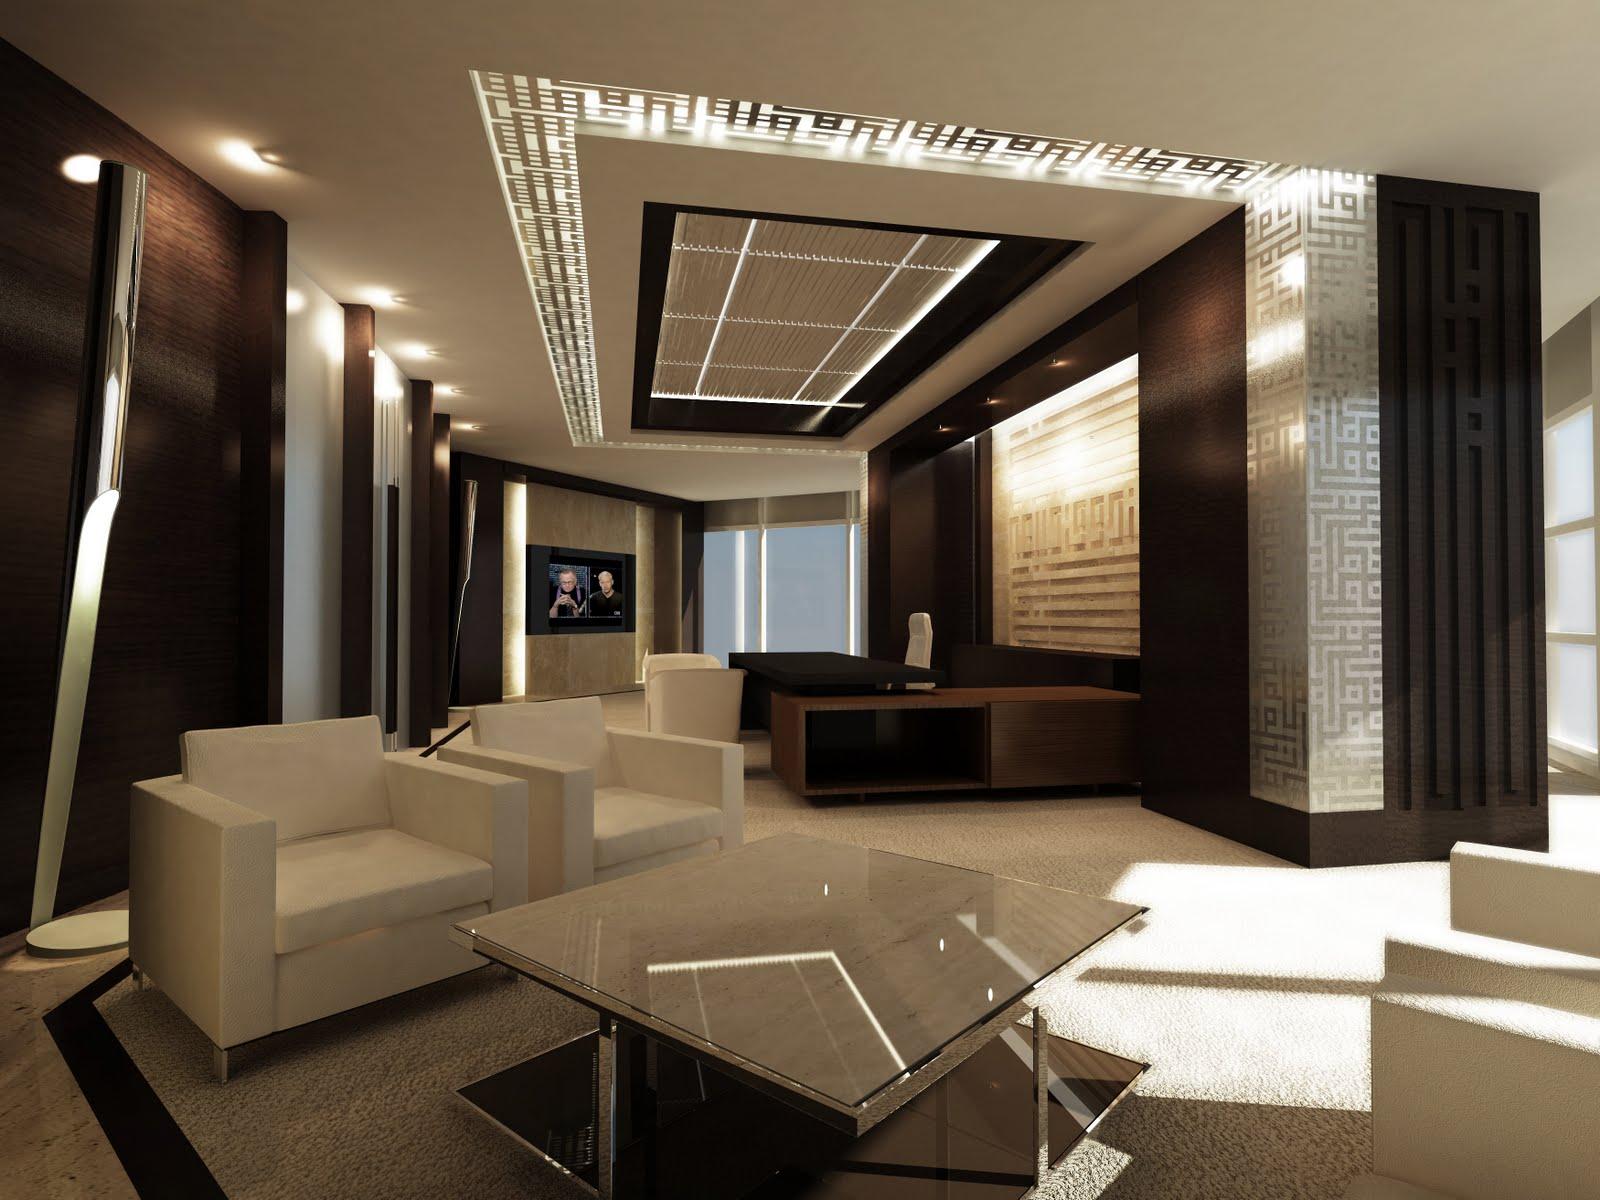 Tawazen Interior Design L.L.C: July 2011